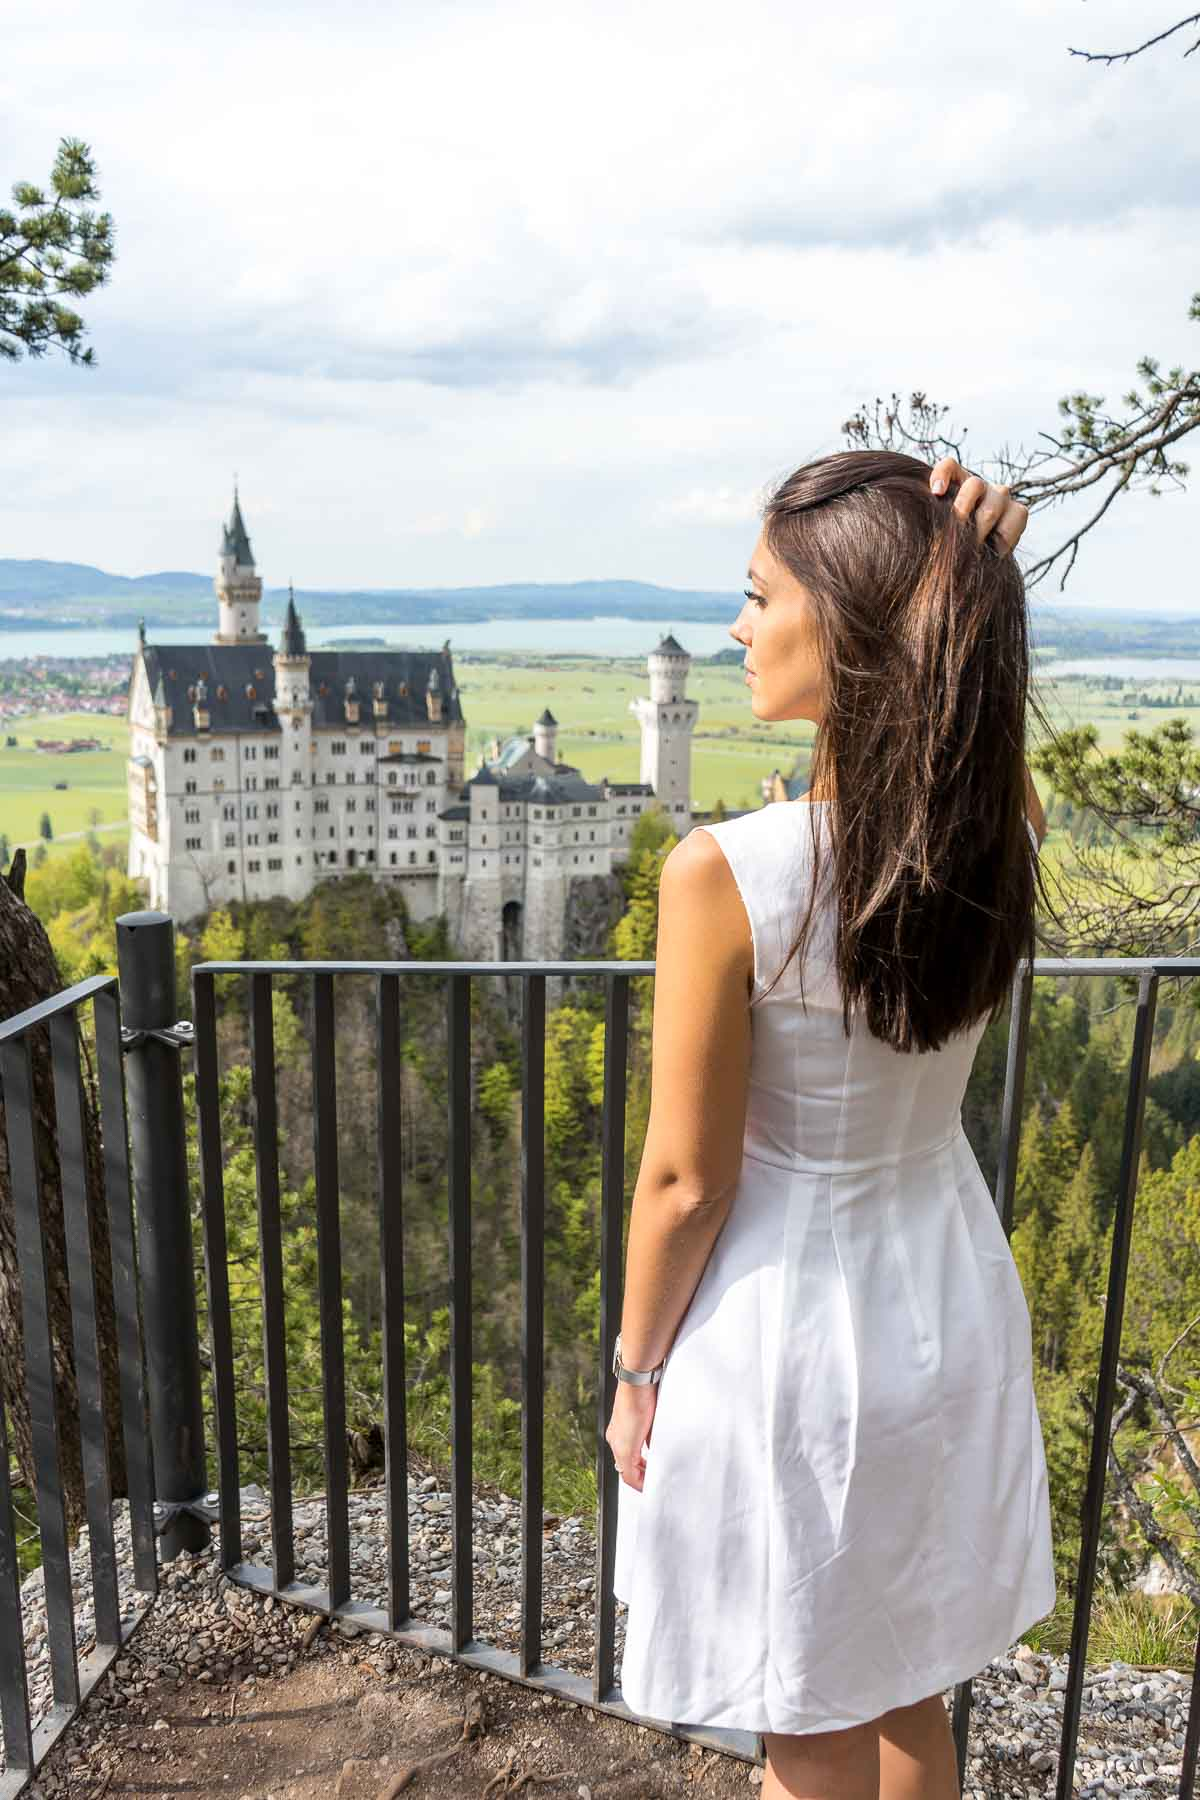 Girl in a white dress looking at the Neuschwanstein Castle from a viewpoint